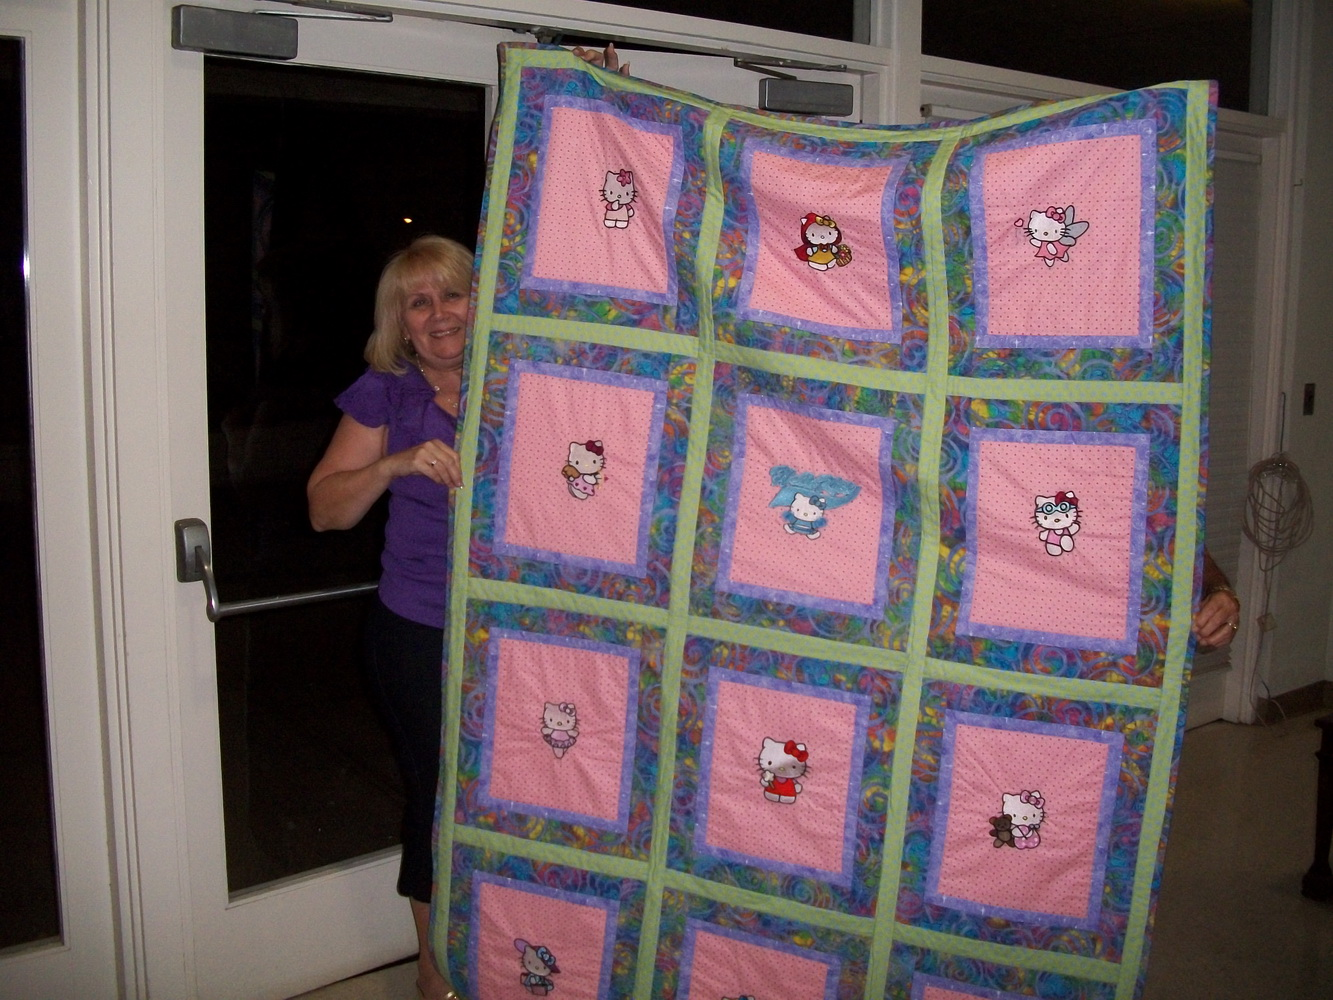 Embroidered Hello Kitty designs on blanket